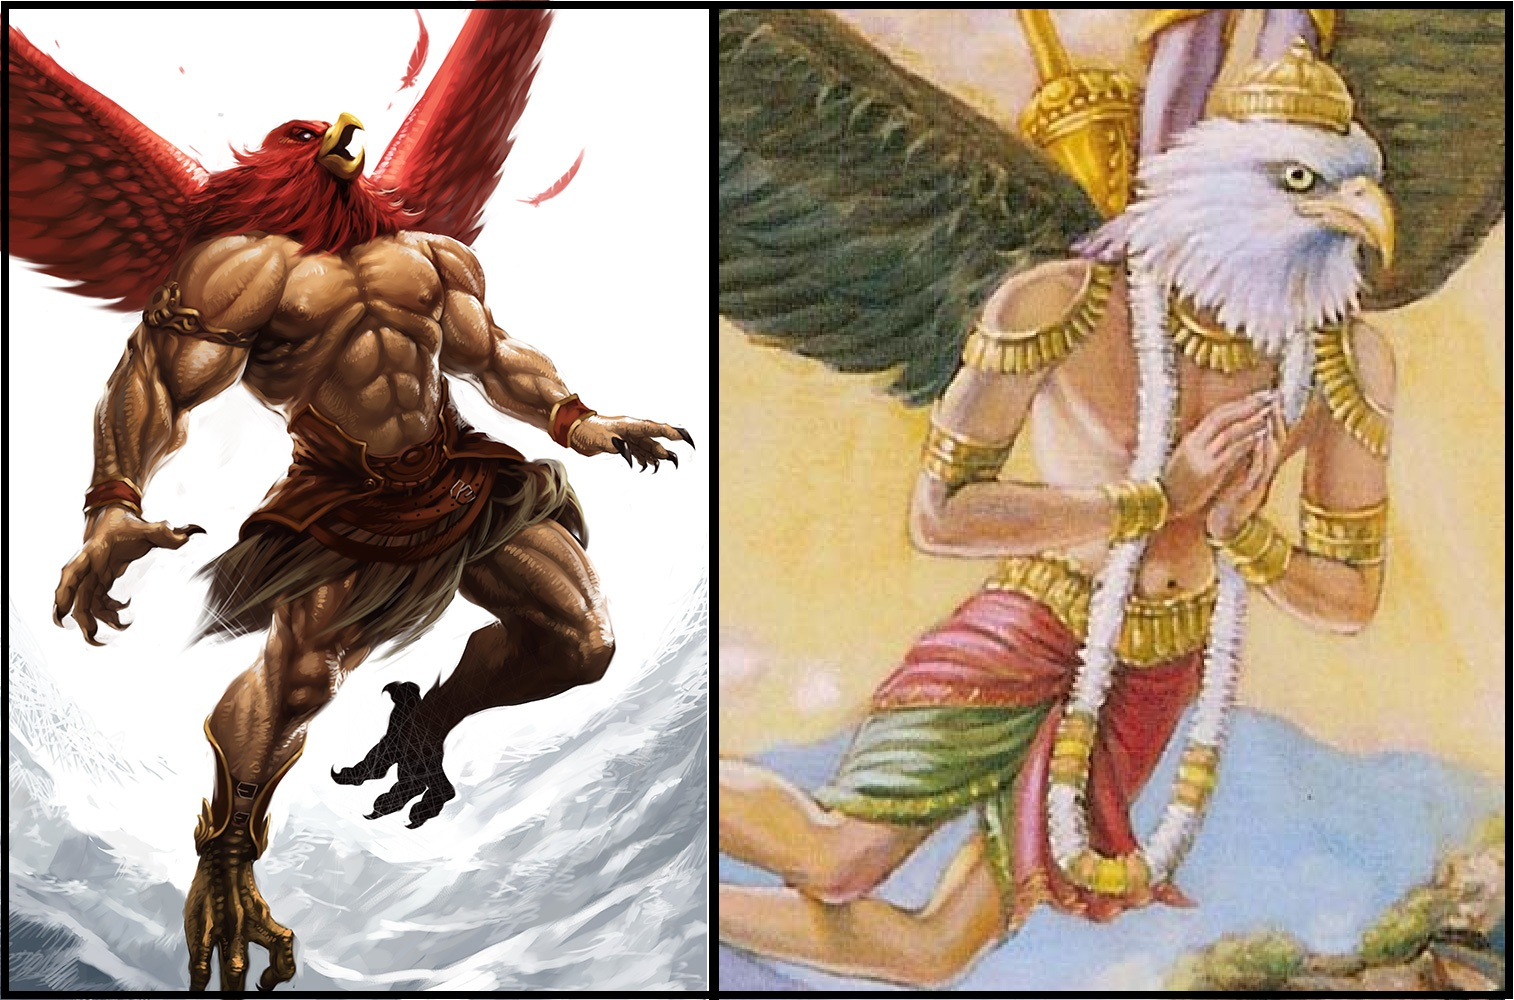 Worship of Hindu Gods in Ancient Egypt